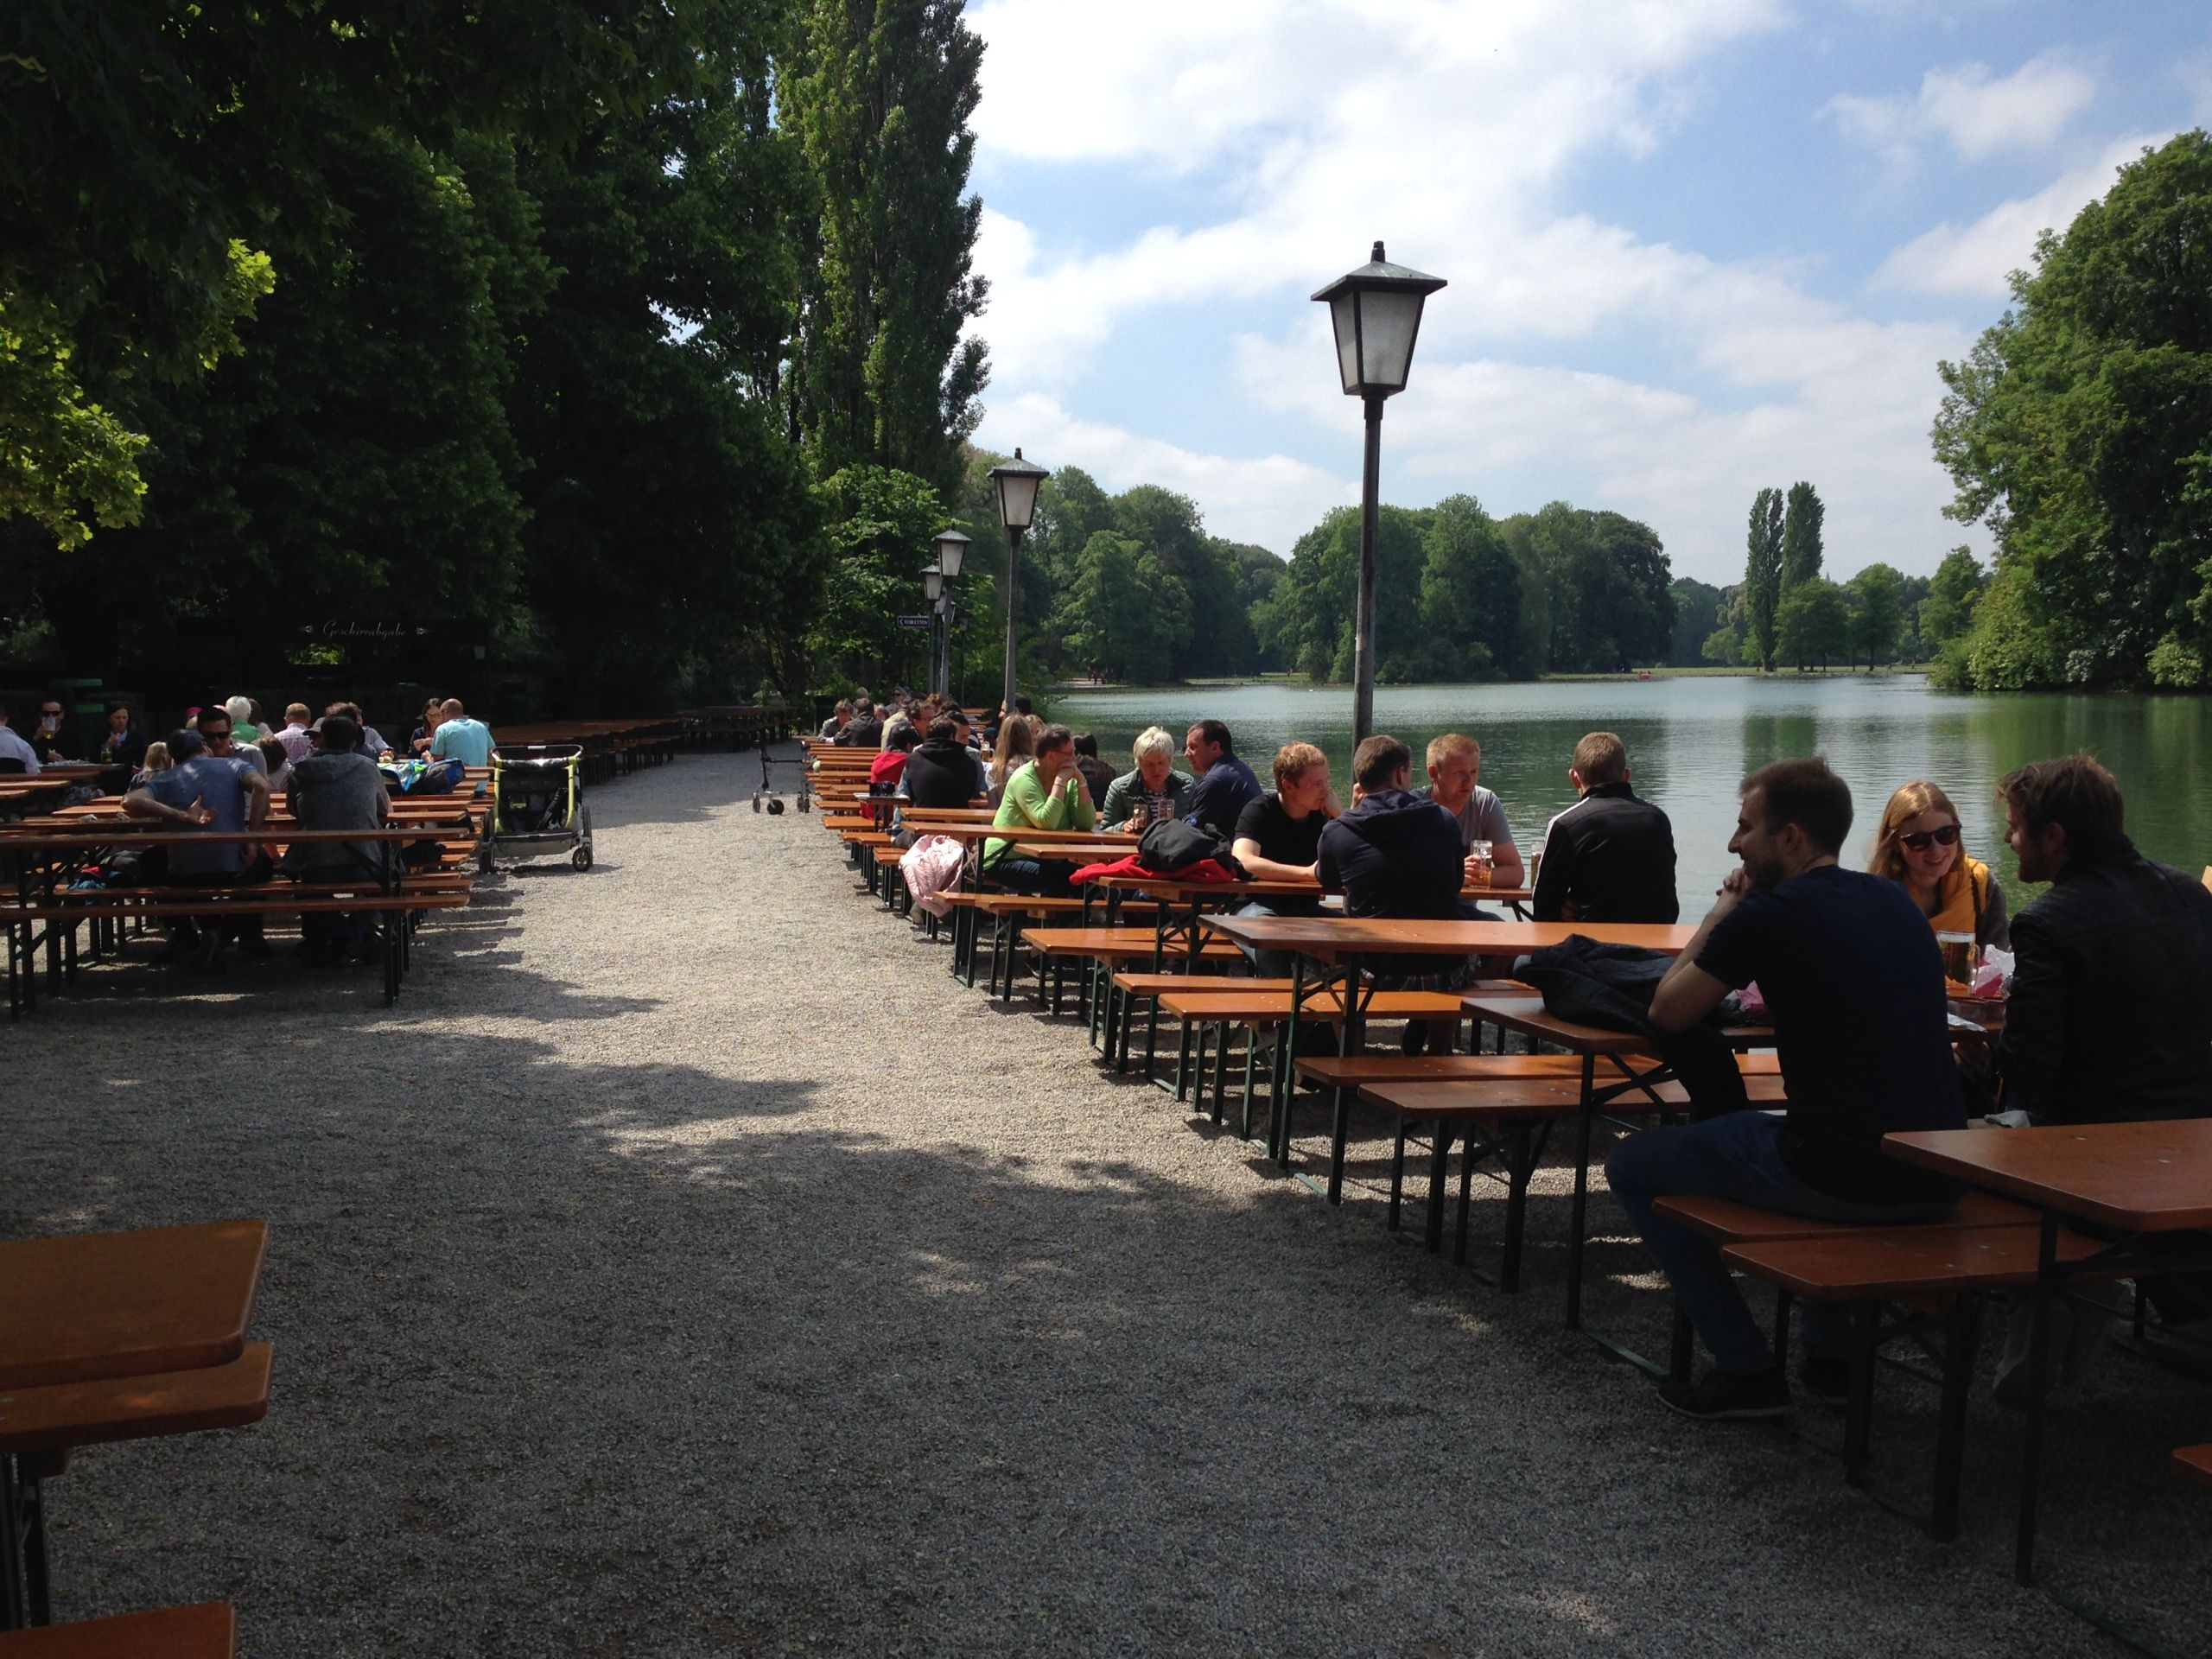 Englischer Garten München Parken Genial A Beer In the Park Beer Gardens In Munich S English Garden